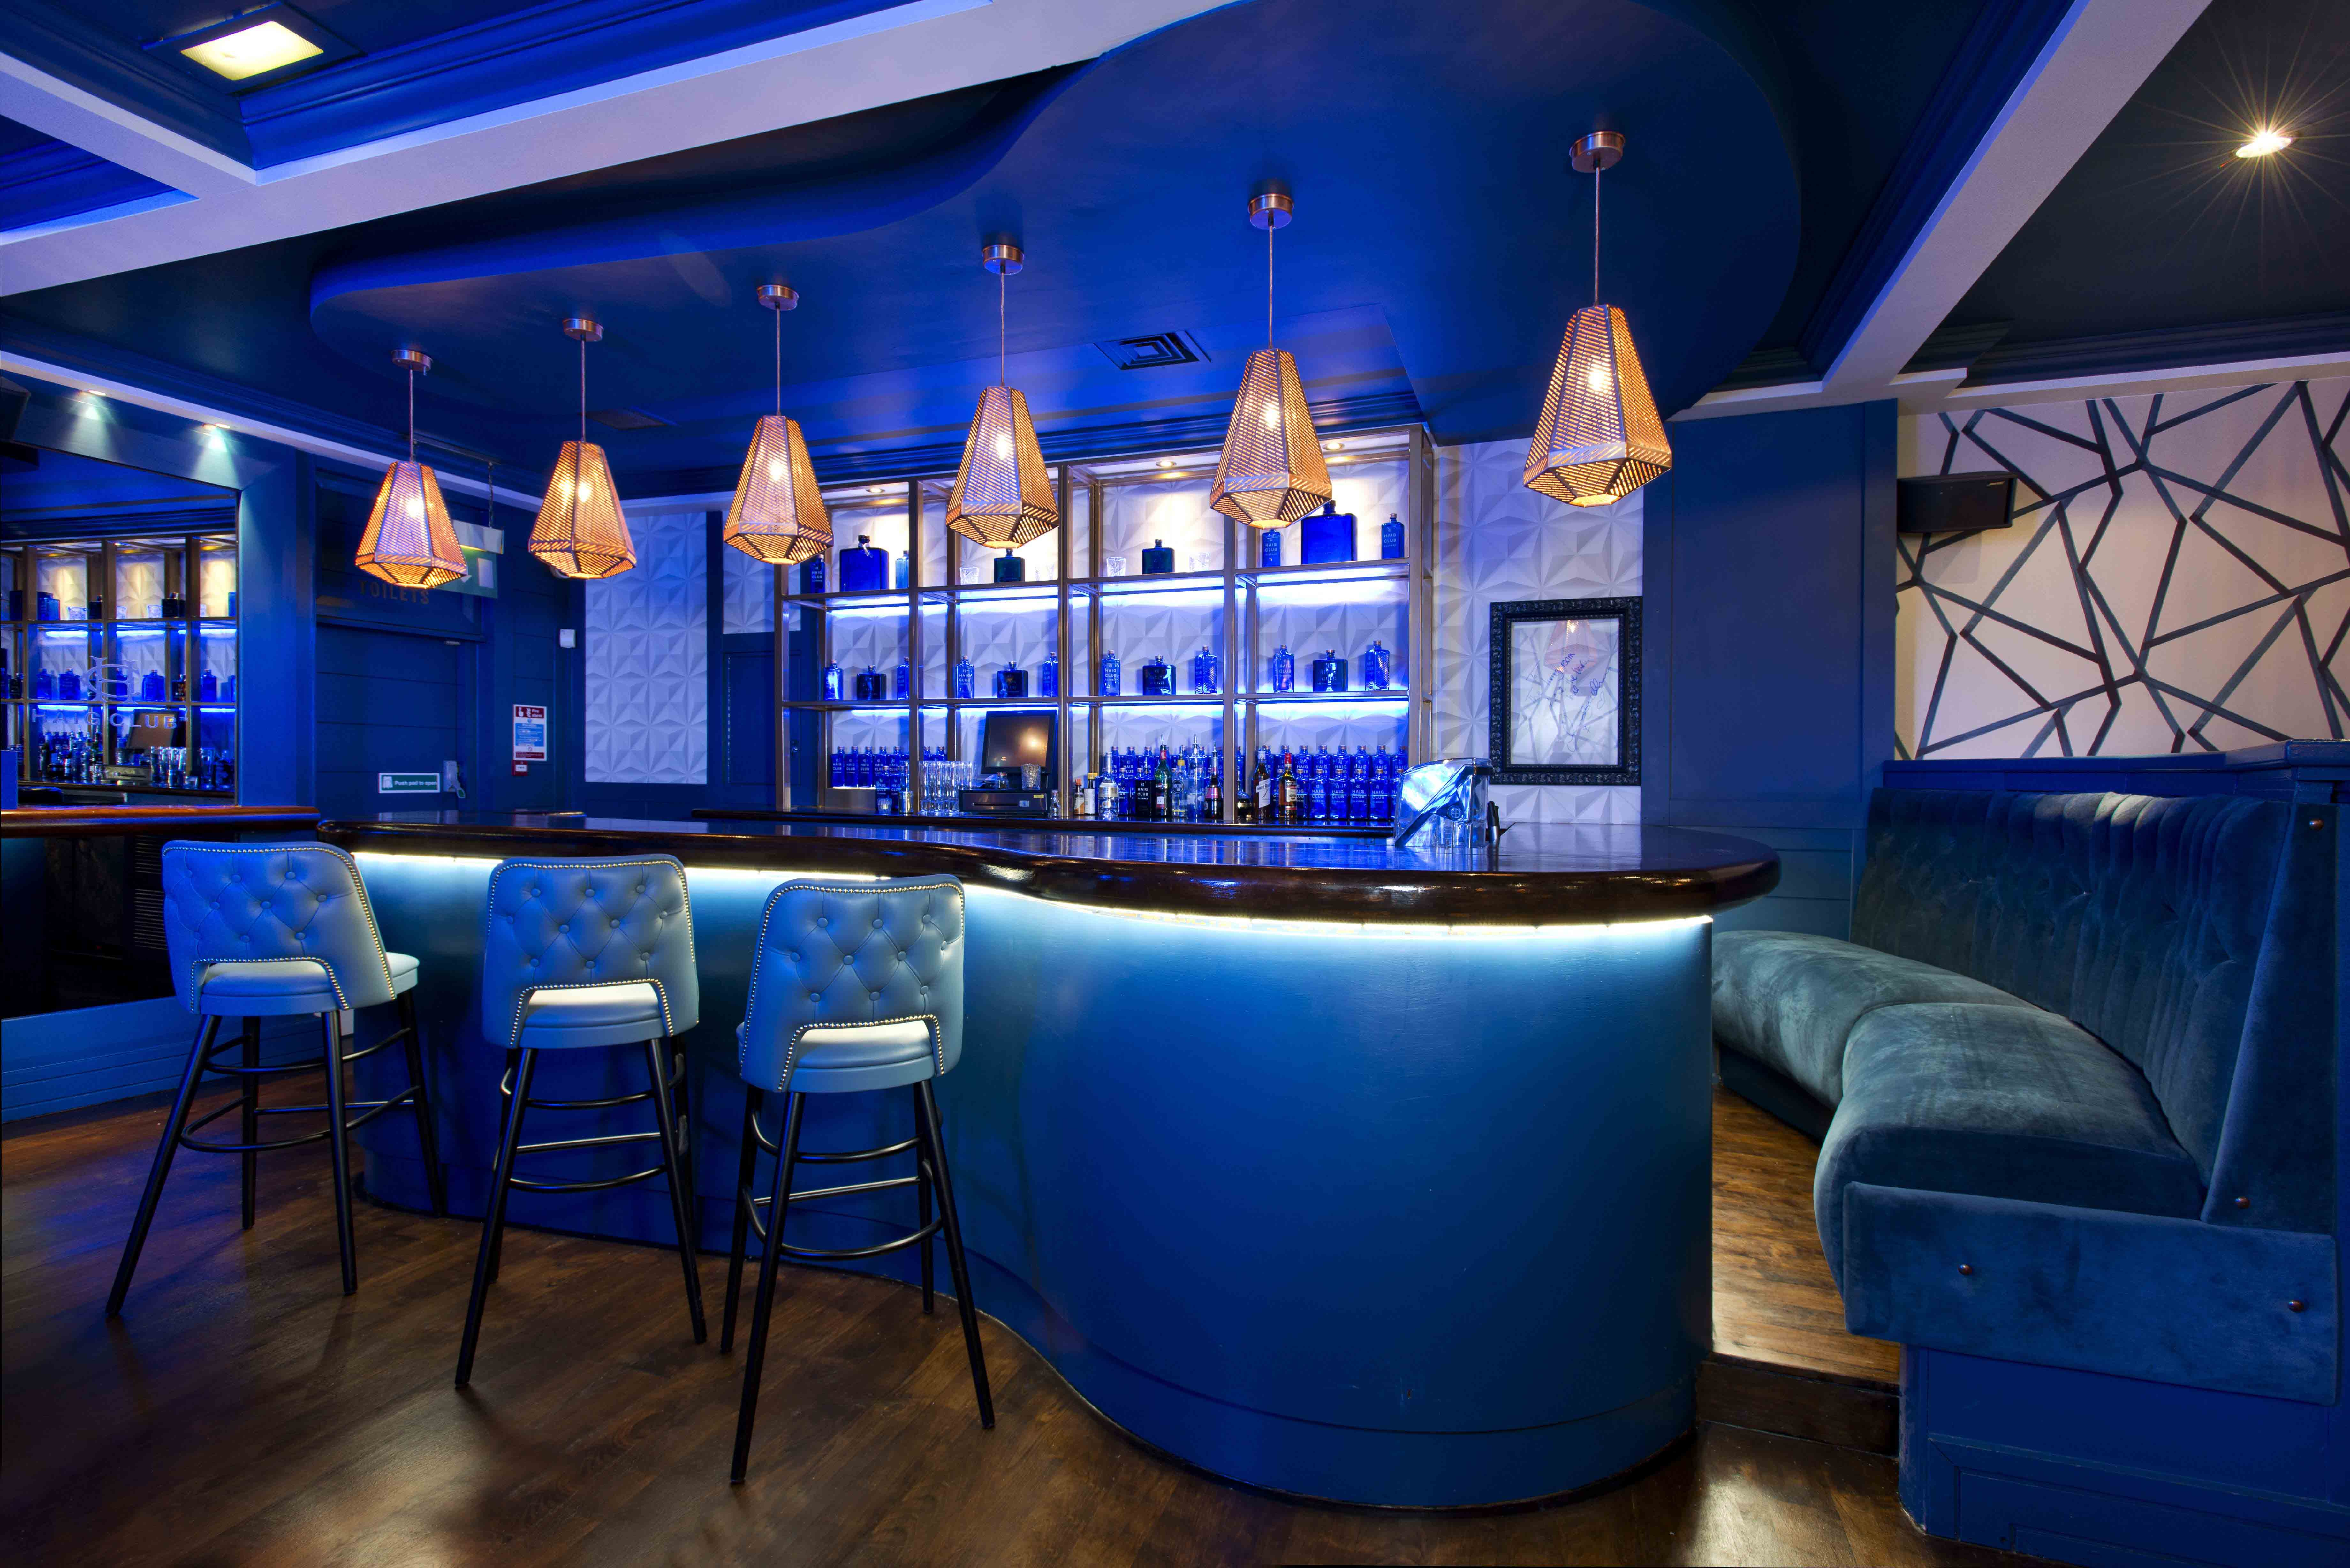 Fusion by Design's interior design scheme for Manchester based restaurant